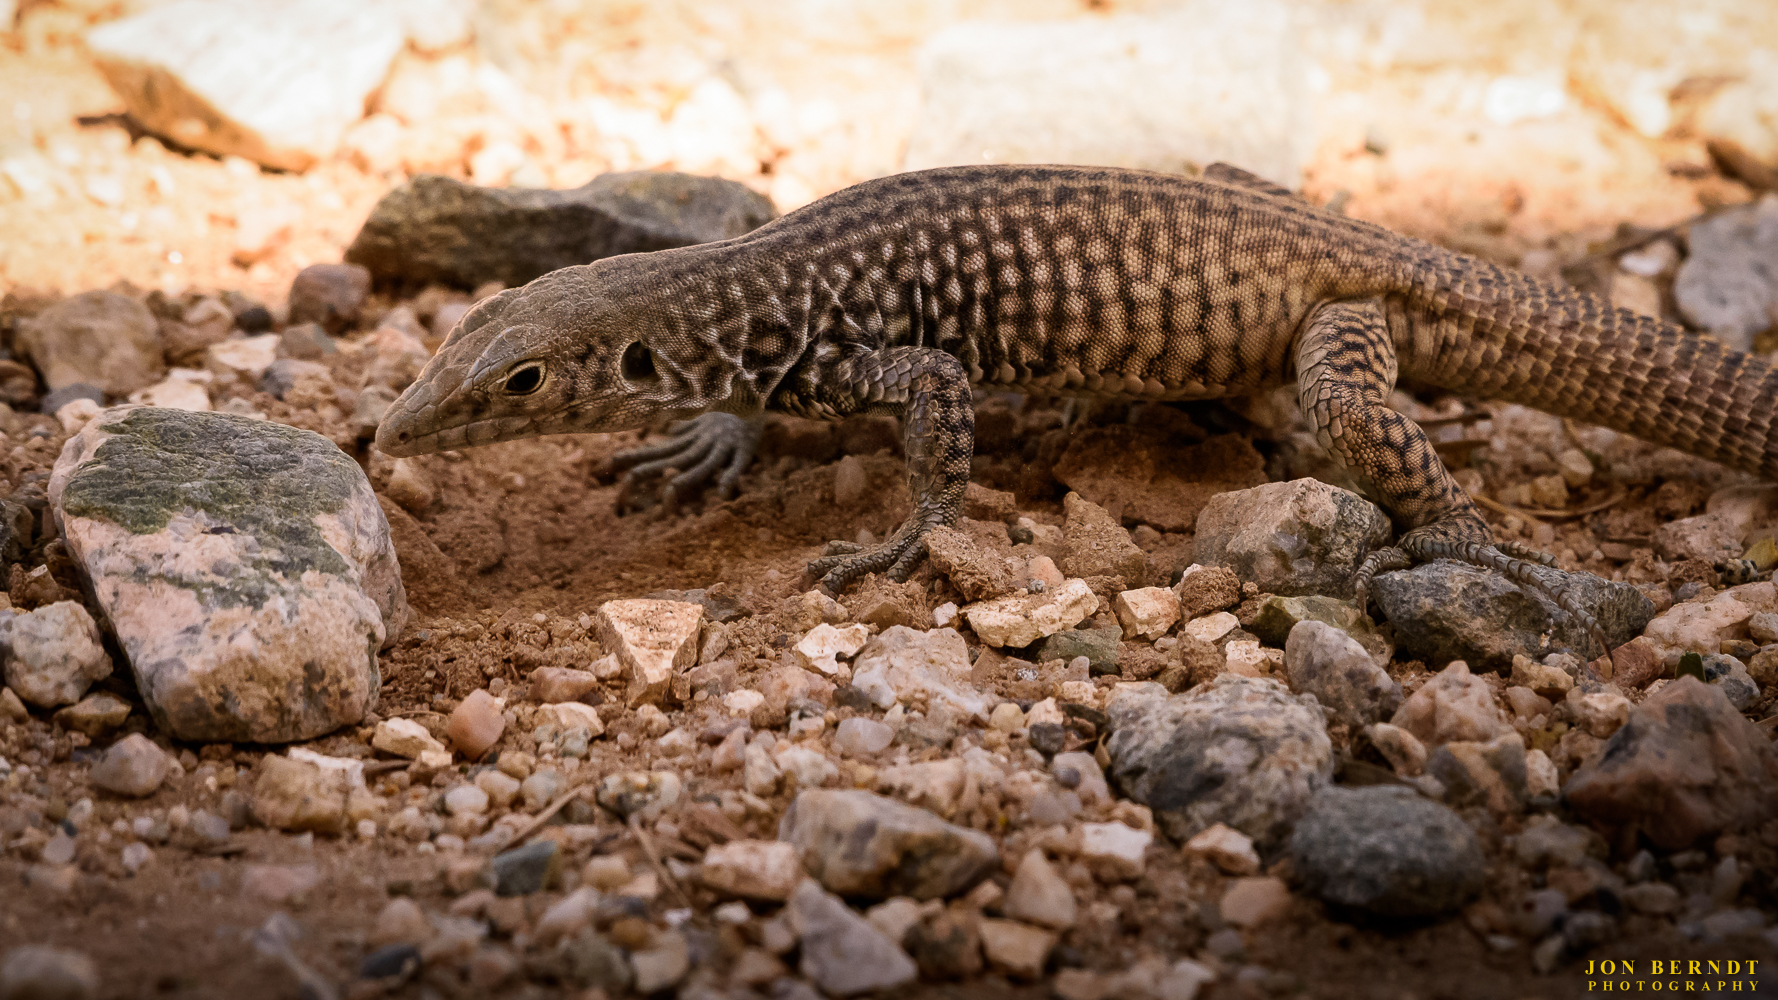 I have no idea what kind of lizard this is. A desert iguana?